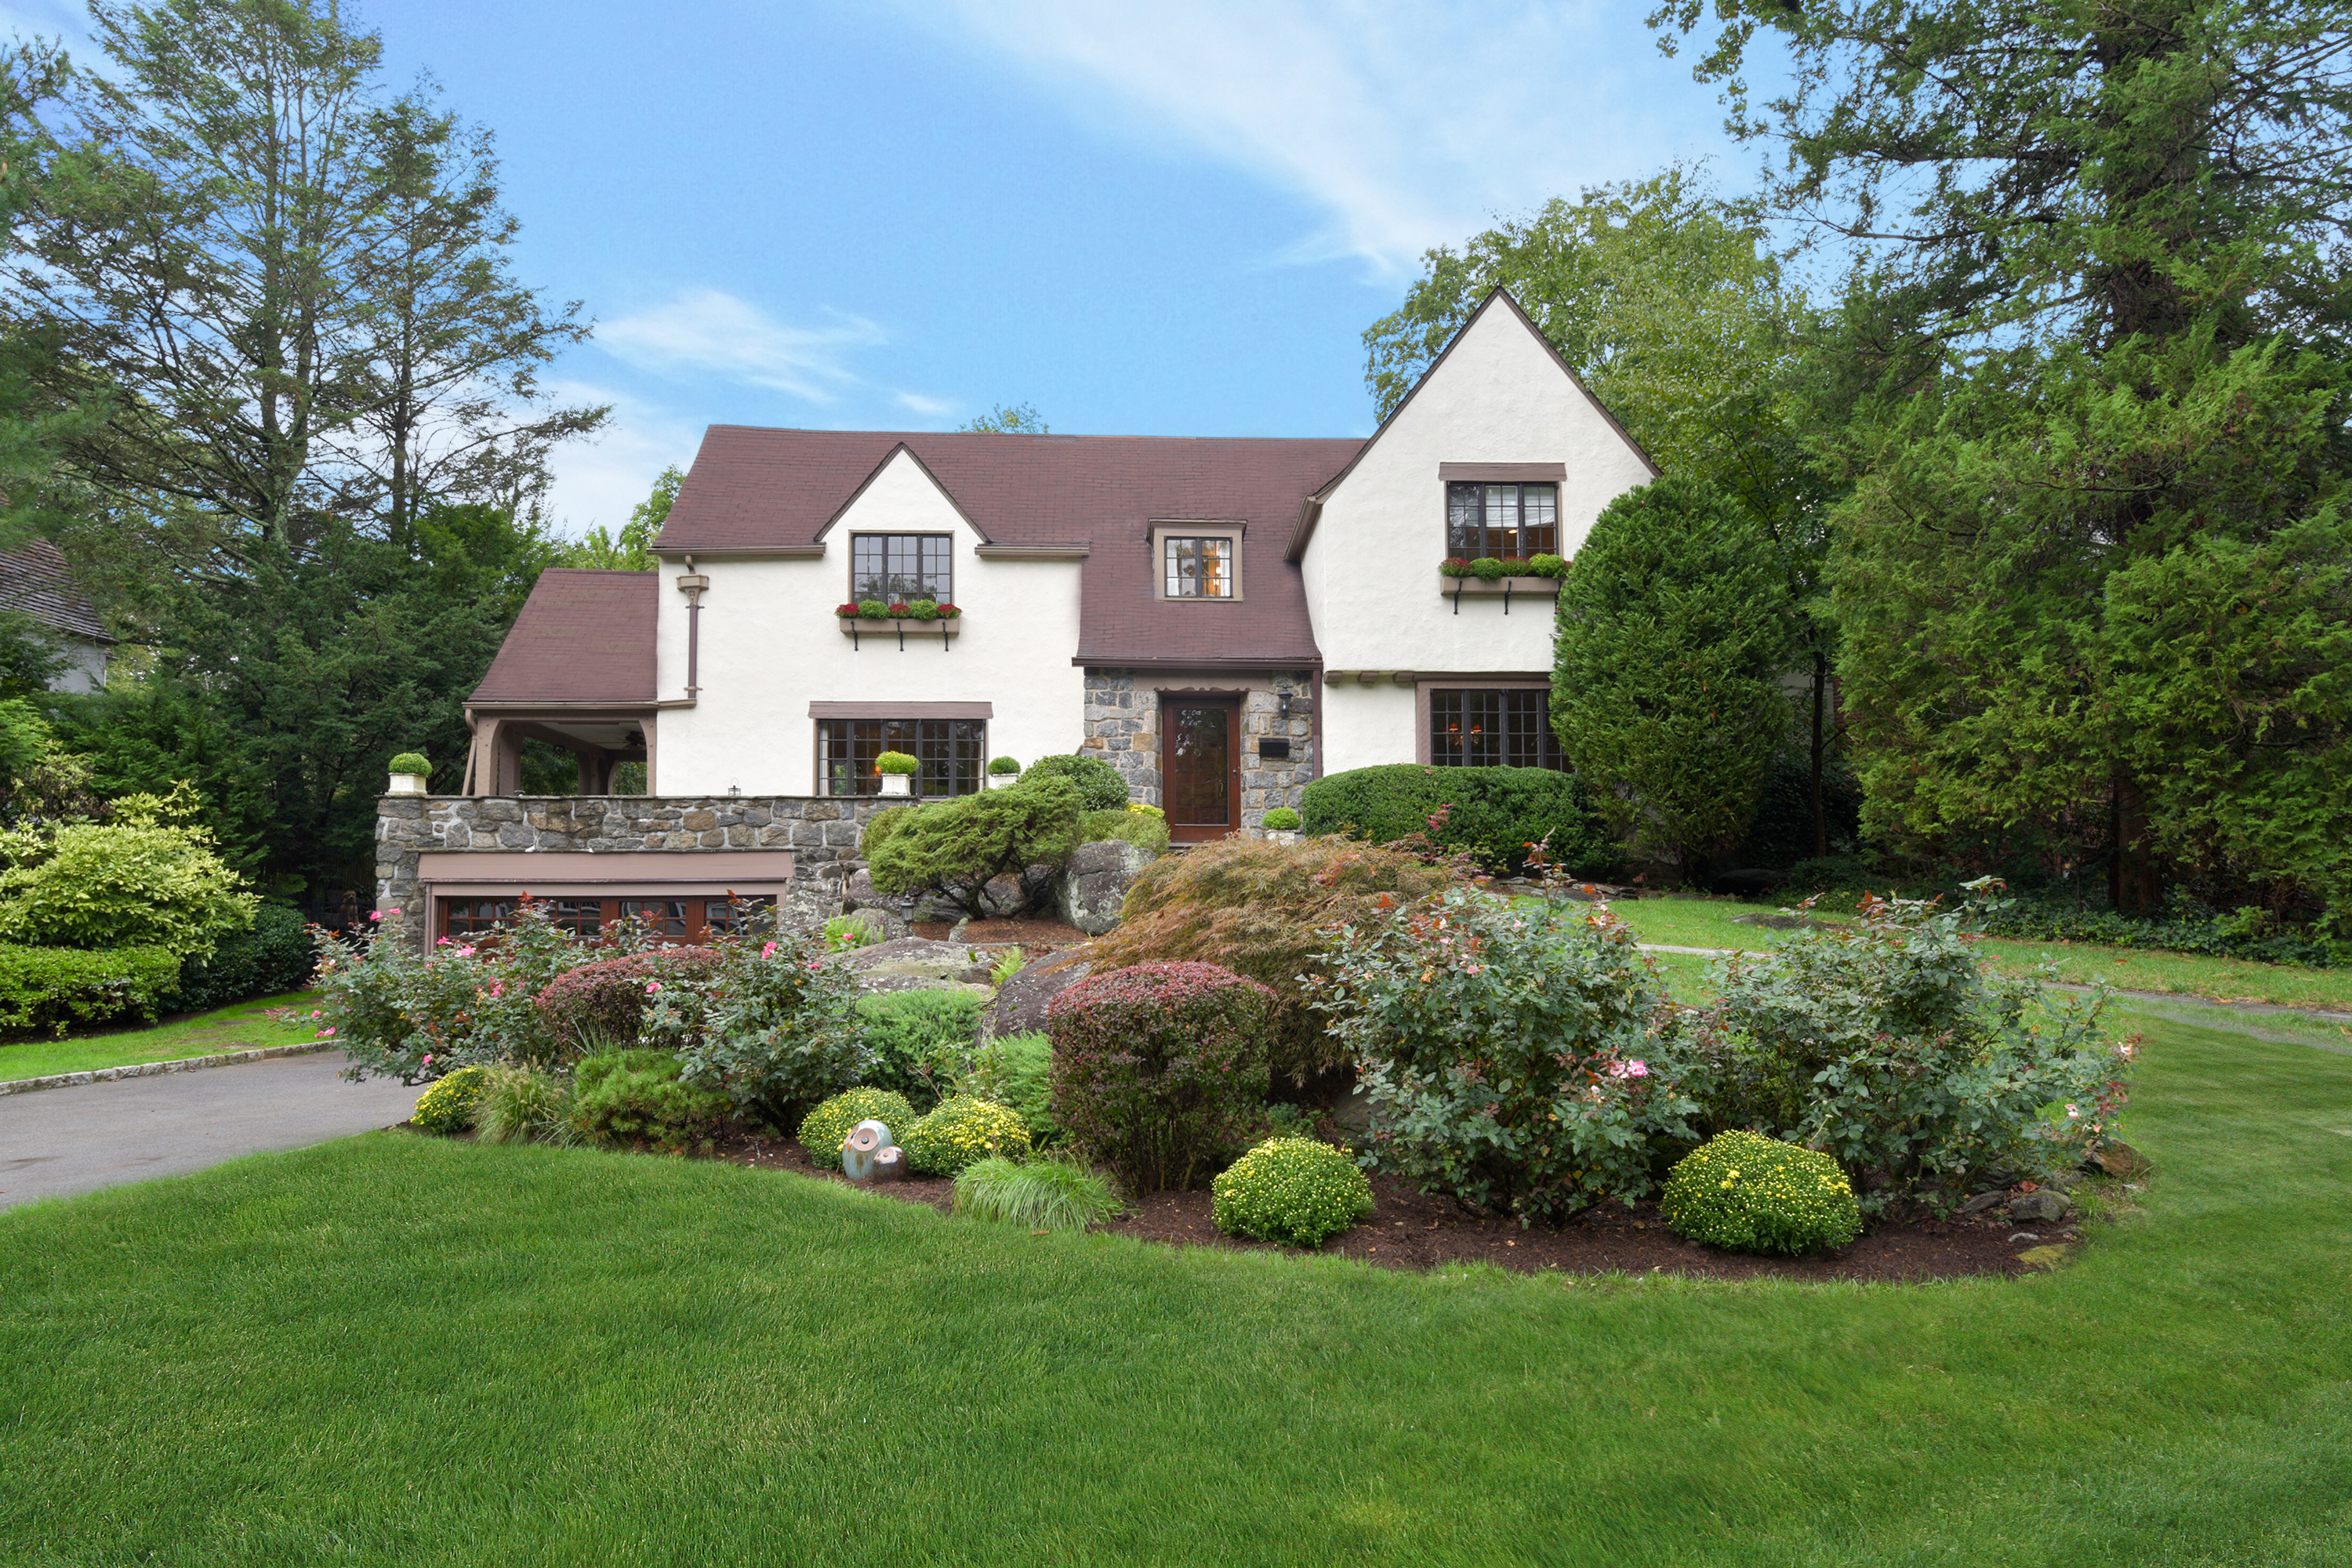 Single Family Home for Sale at Renovated Rouken Glenn Tudor 12 Knollwood Drive Larchmont, New York, 10538 United States